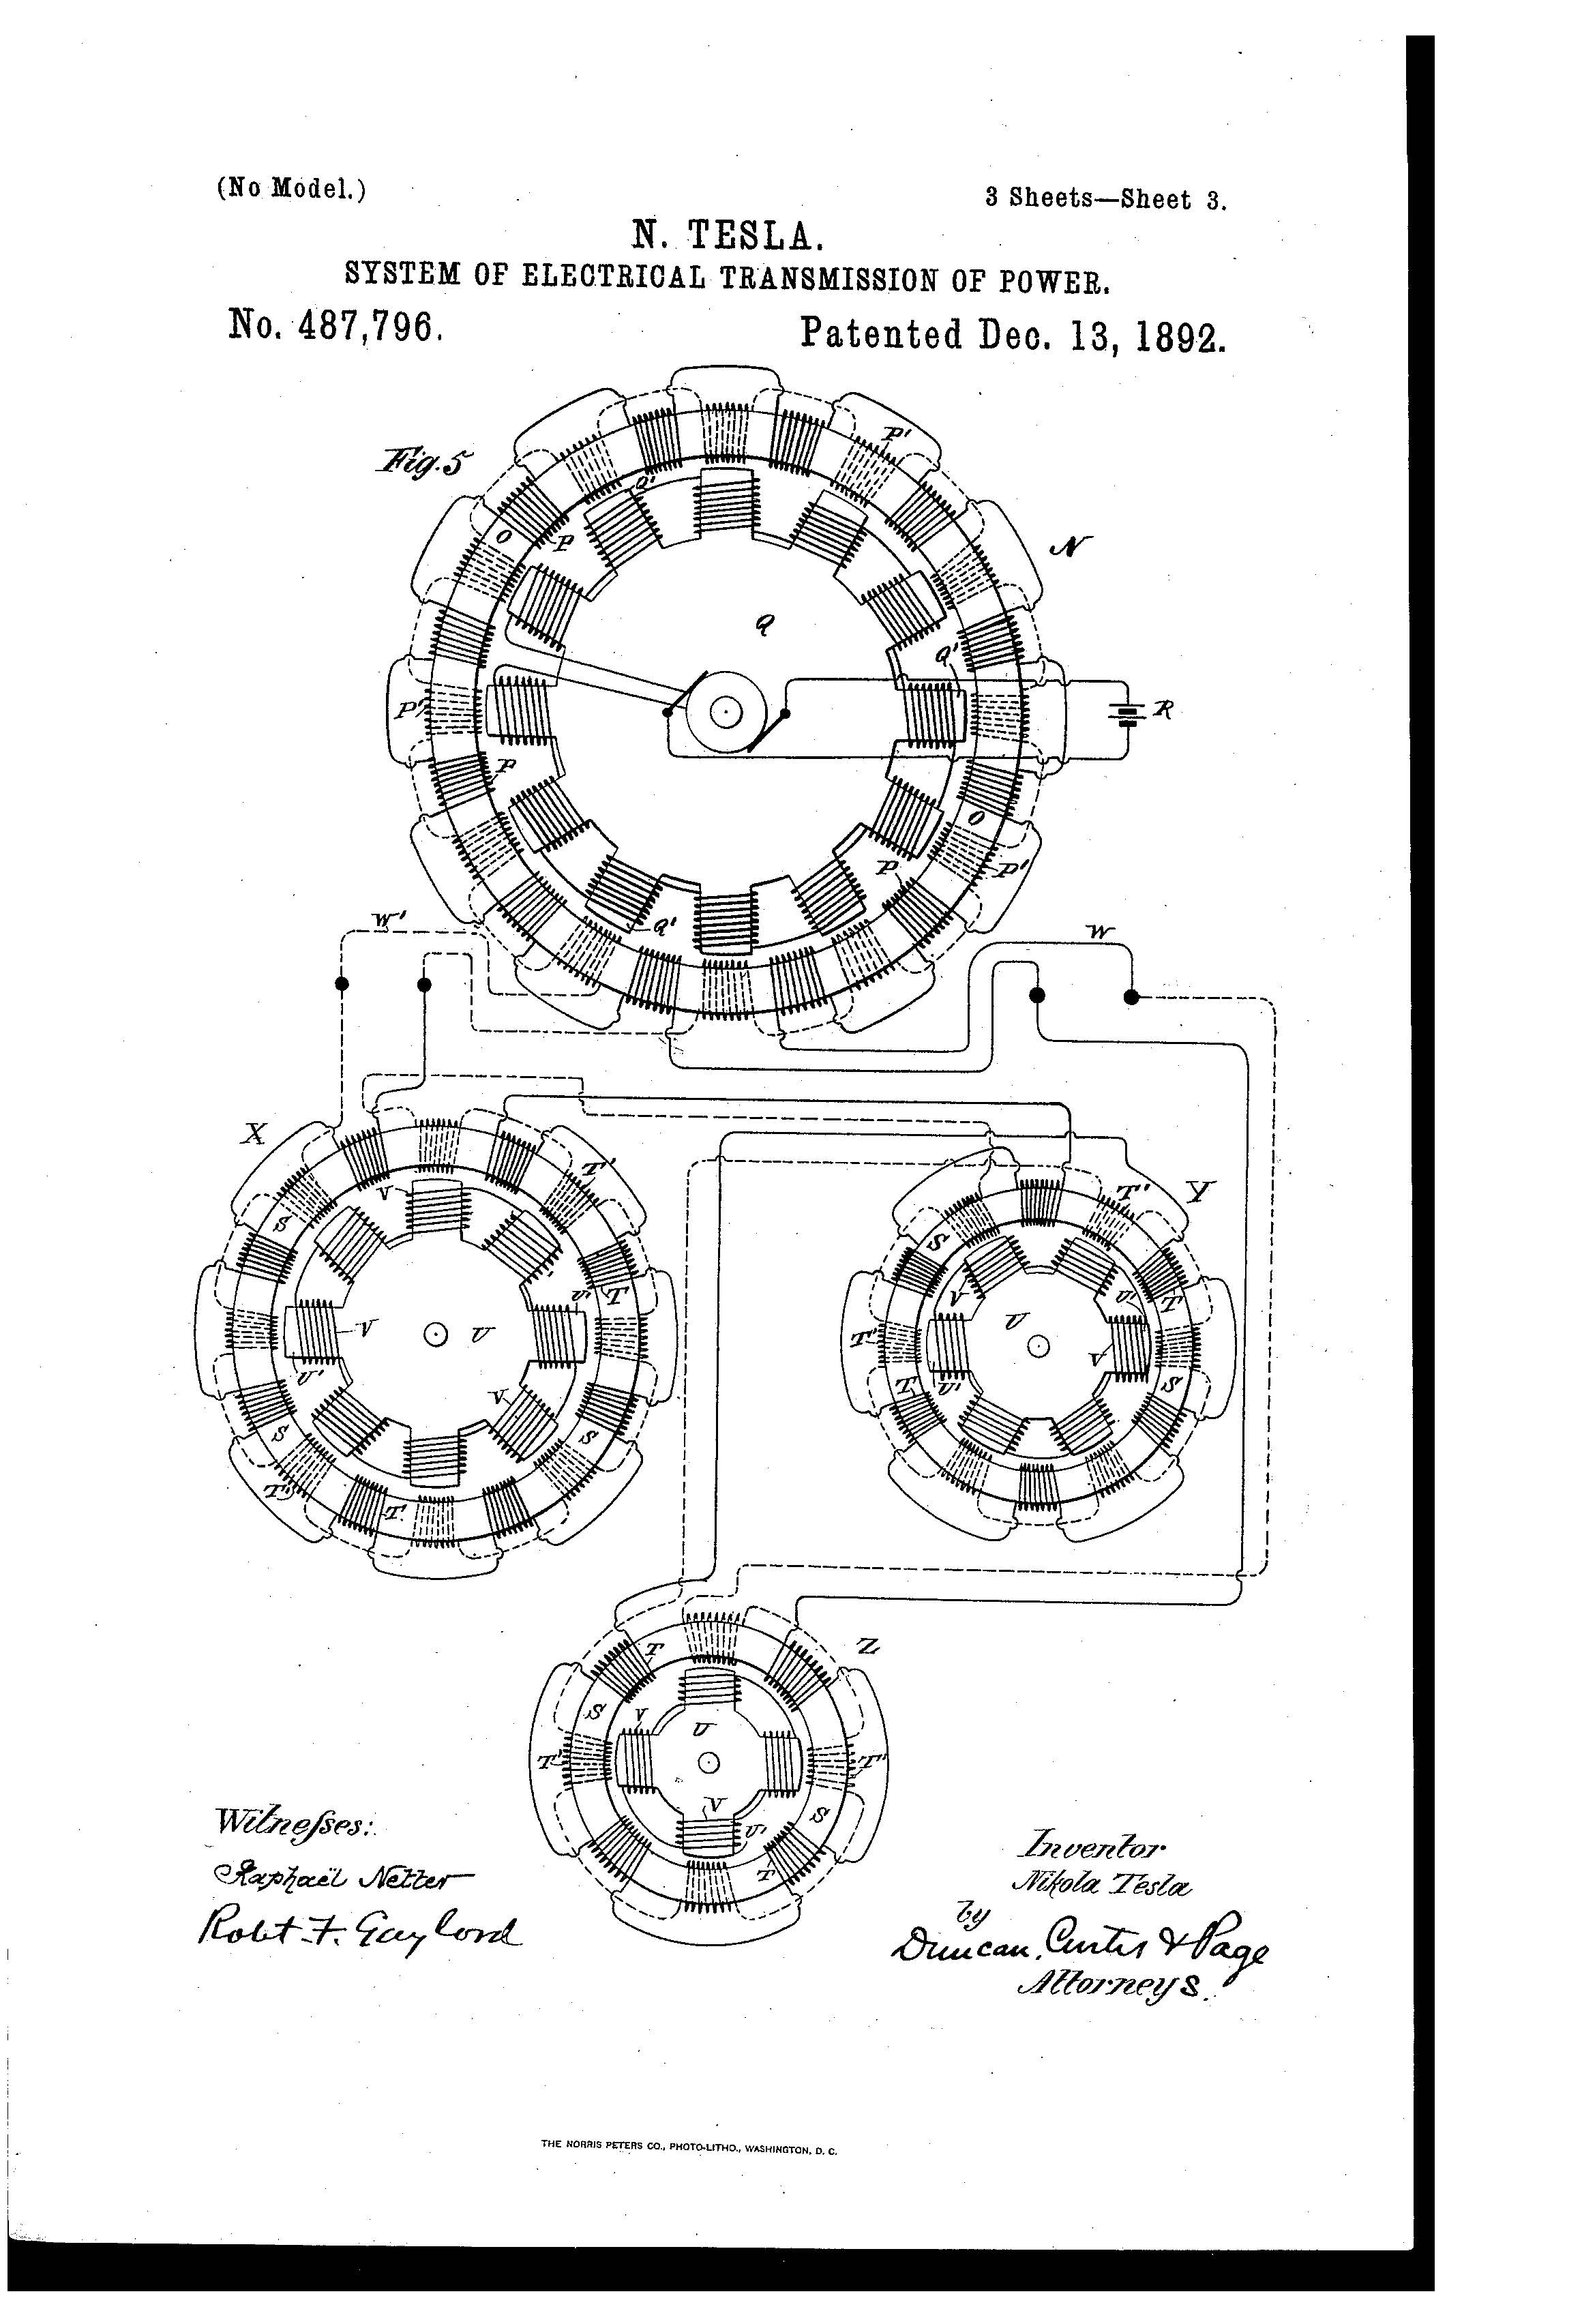 Patent of the Day: System of Electrical Transmission of